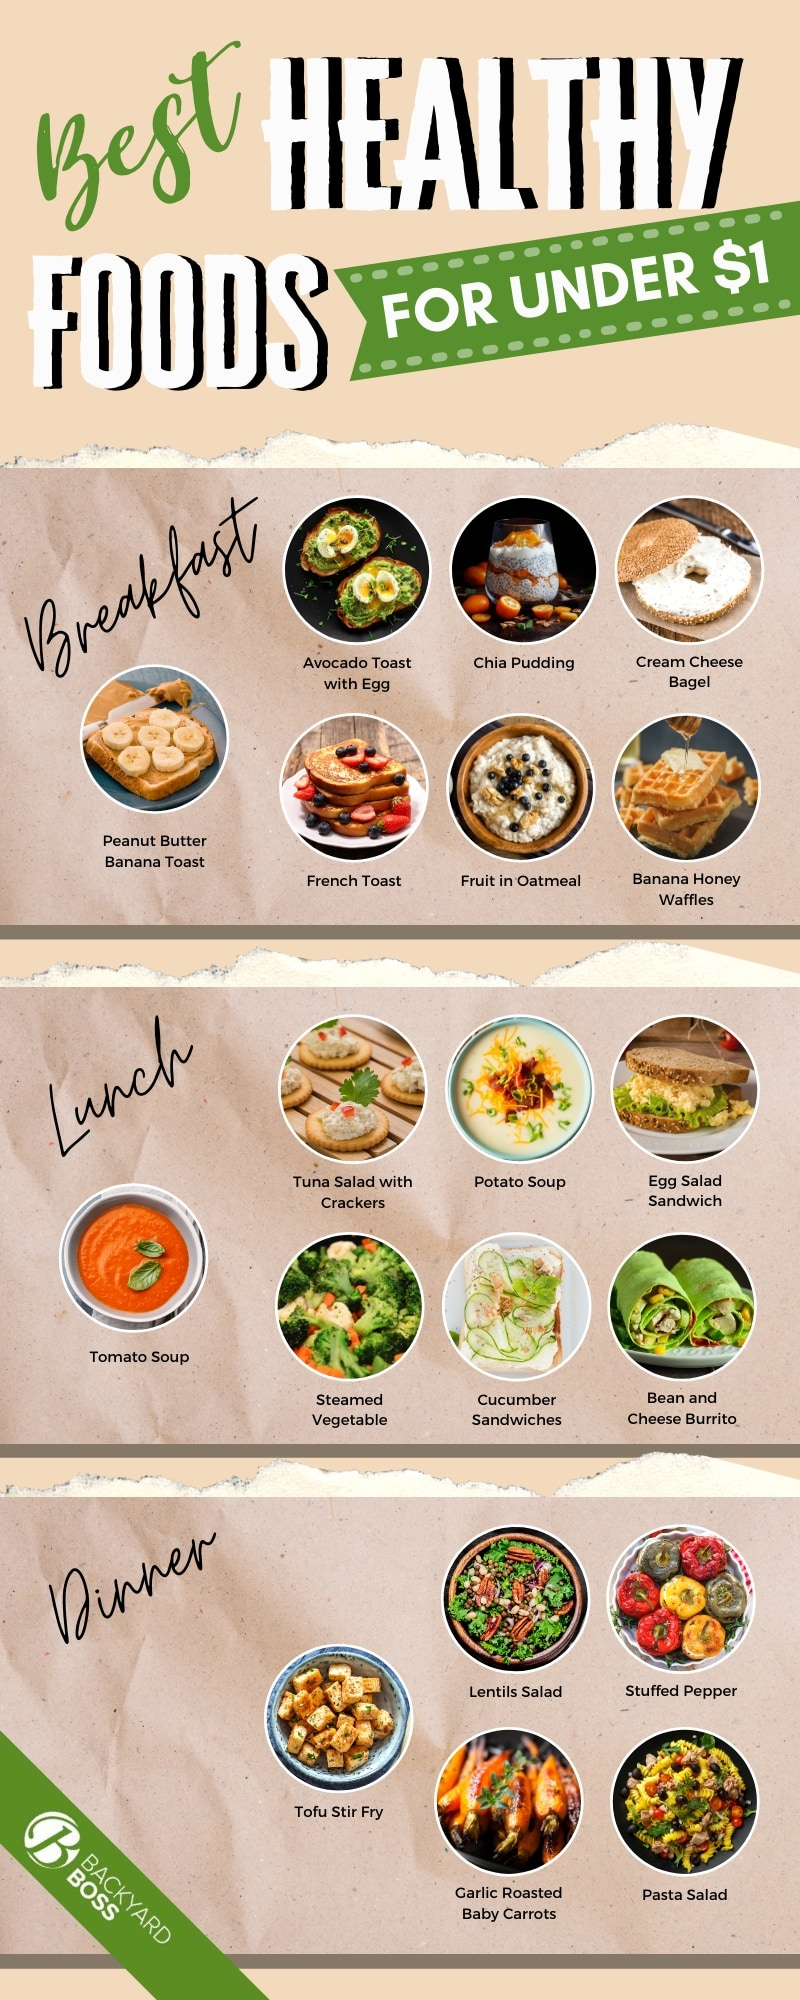 Best Healthy Foods for Under $1 - Infographic